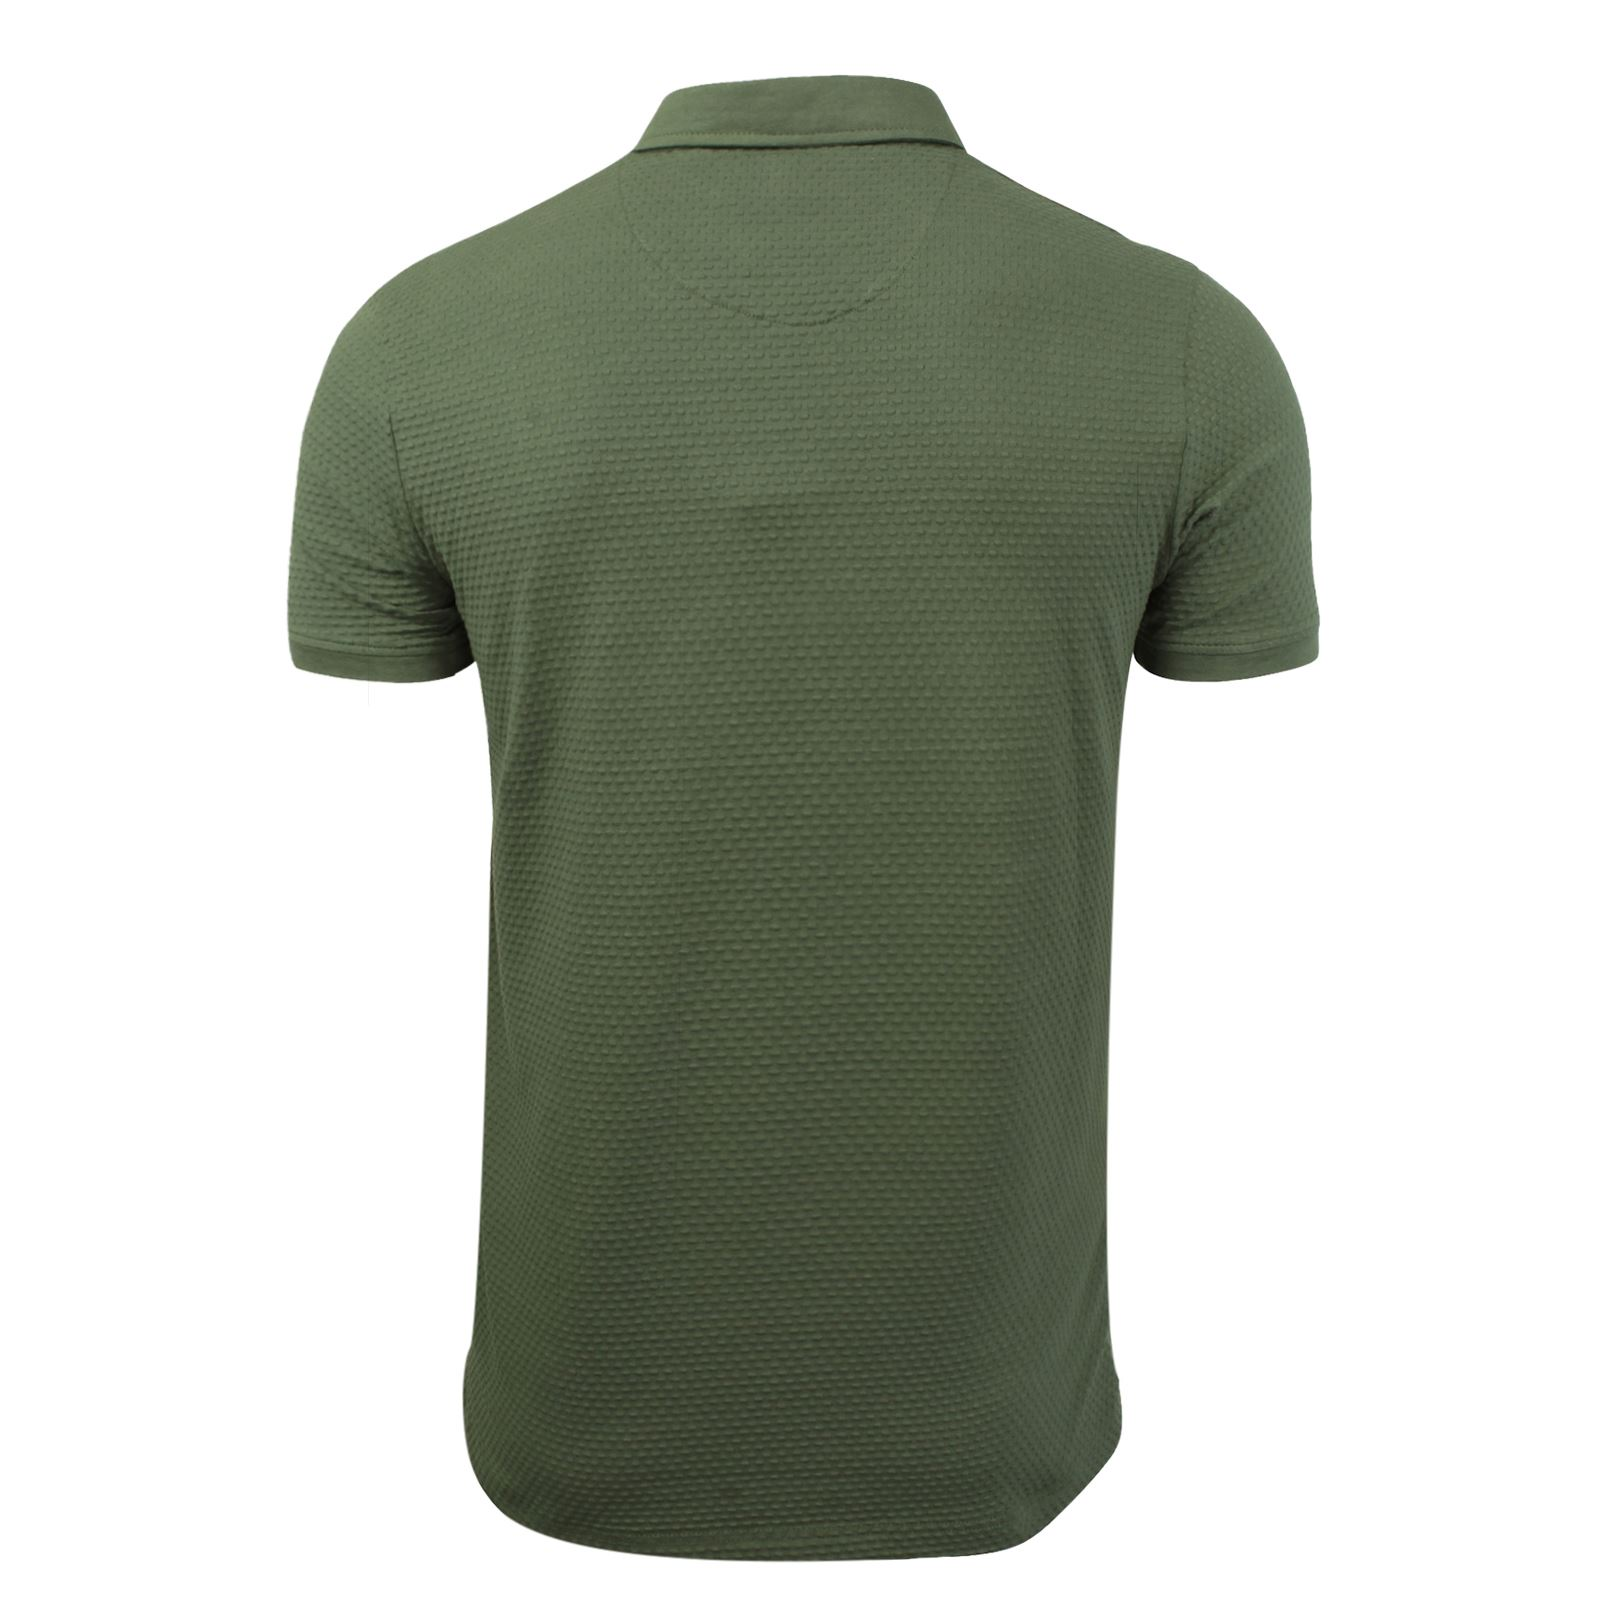 Mens-Polo-T-Shirt-Brave-Soul-Glover-Cotton-Collared-Short-Sleeve-Casual-Top thumbnail 88